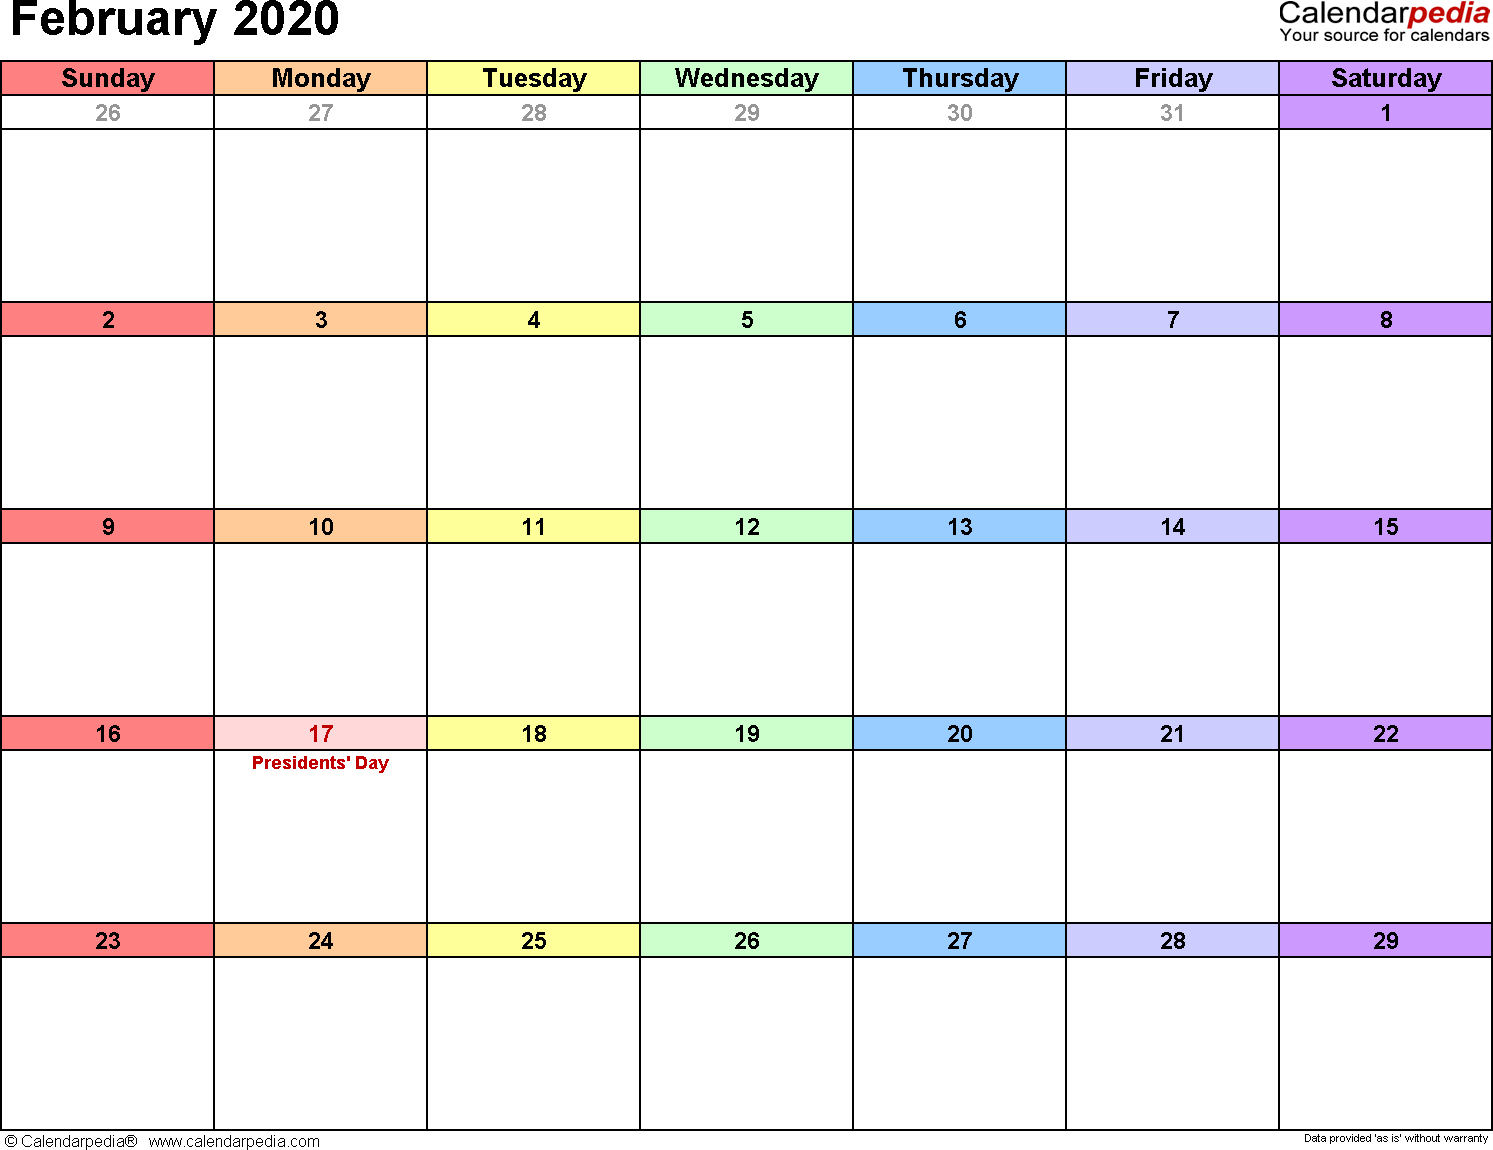 February 2020 Calendar Template Download February 2020 Calendars for Word, Excel & PDF